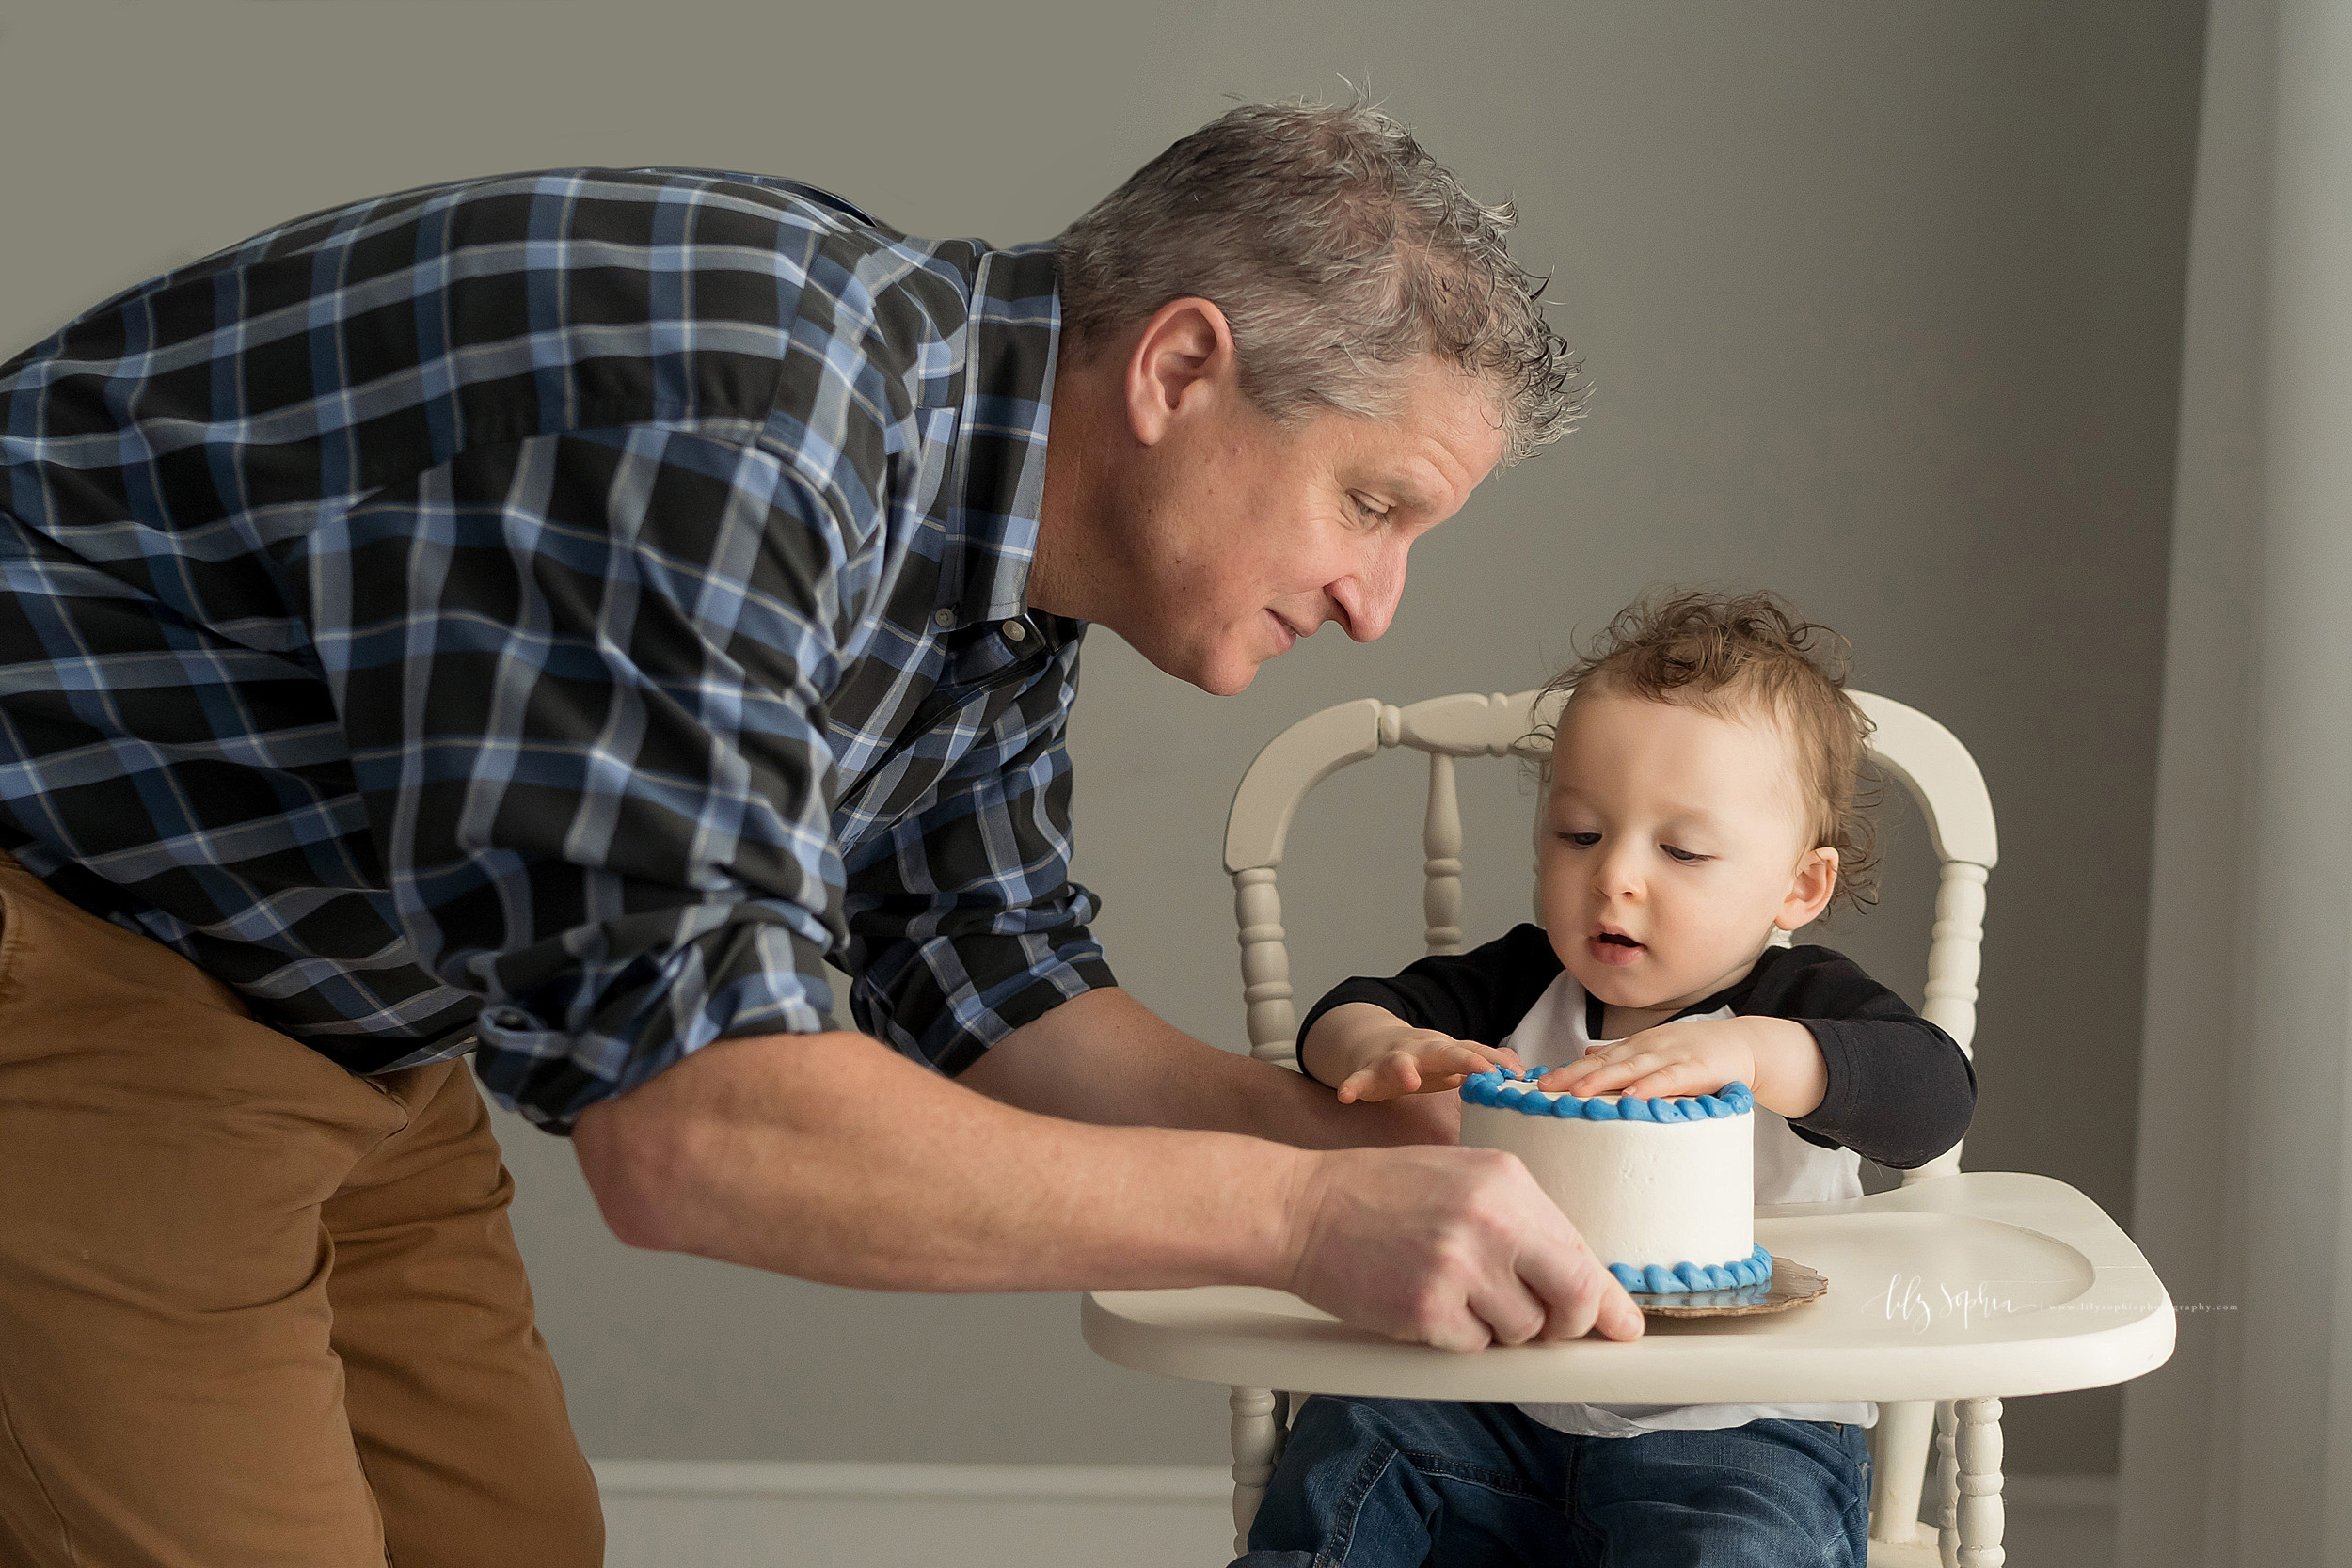 Photo of a father and son on his son's first birthday. The father is putting a cake in front of his son as his son sits in an antique high chair, pats the cake with his hand, and looks on with anticipation.